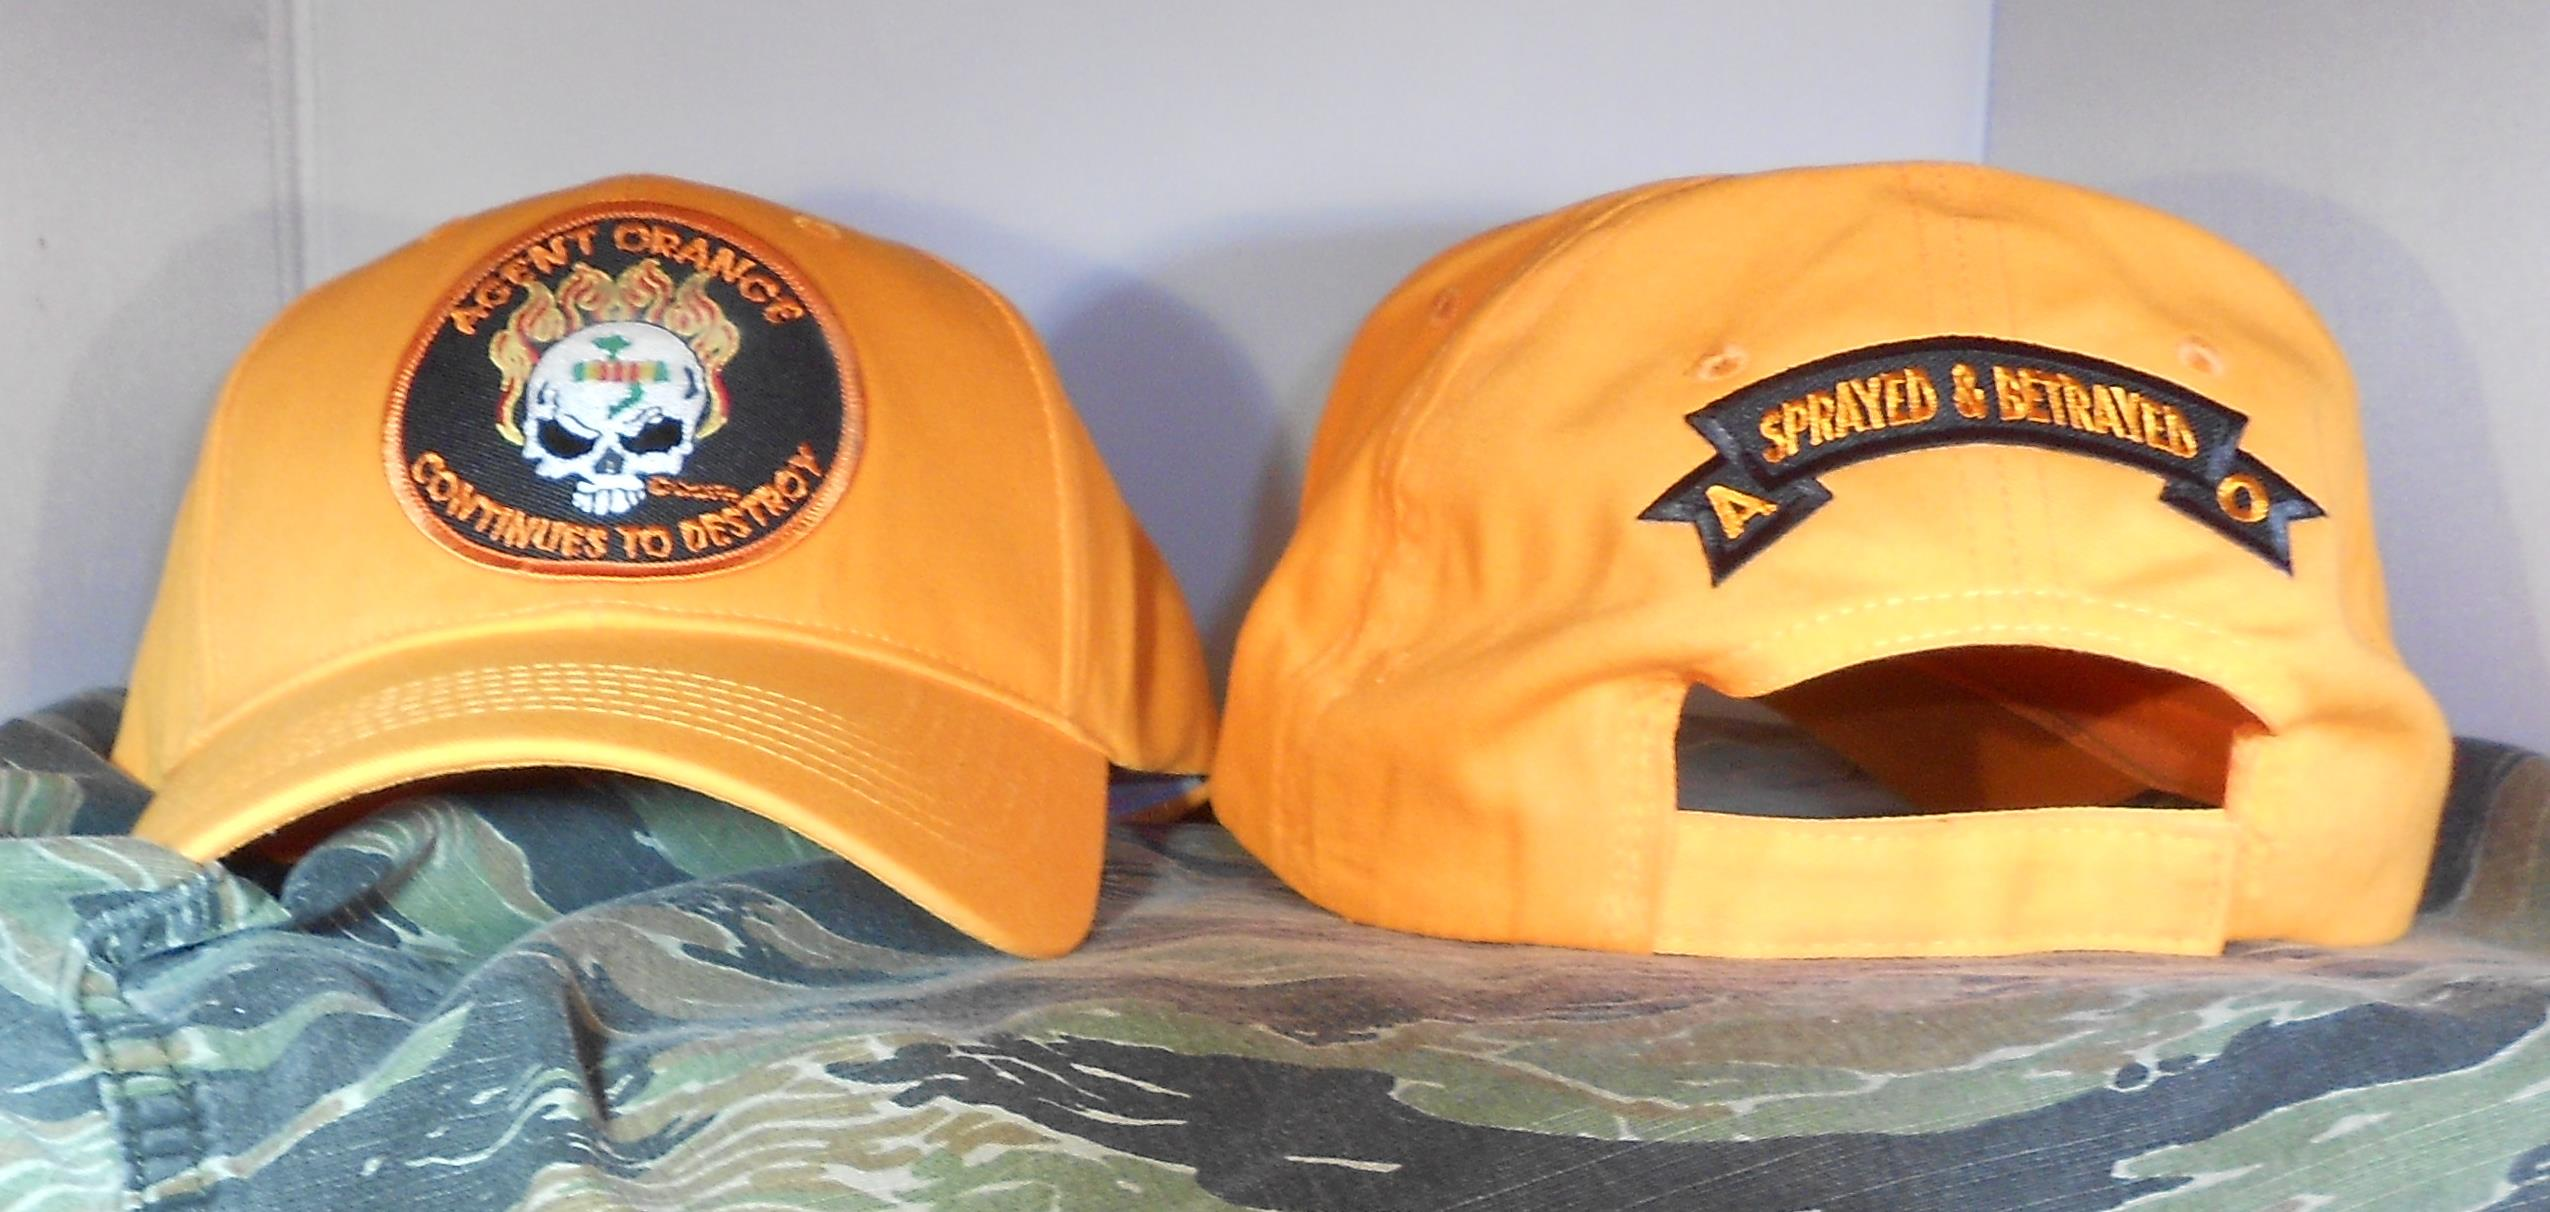 AGENT ORANGE CONTINUES TO DESTROY ORANGE HATS